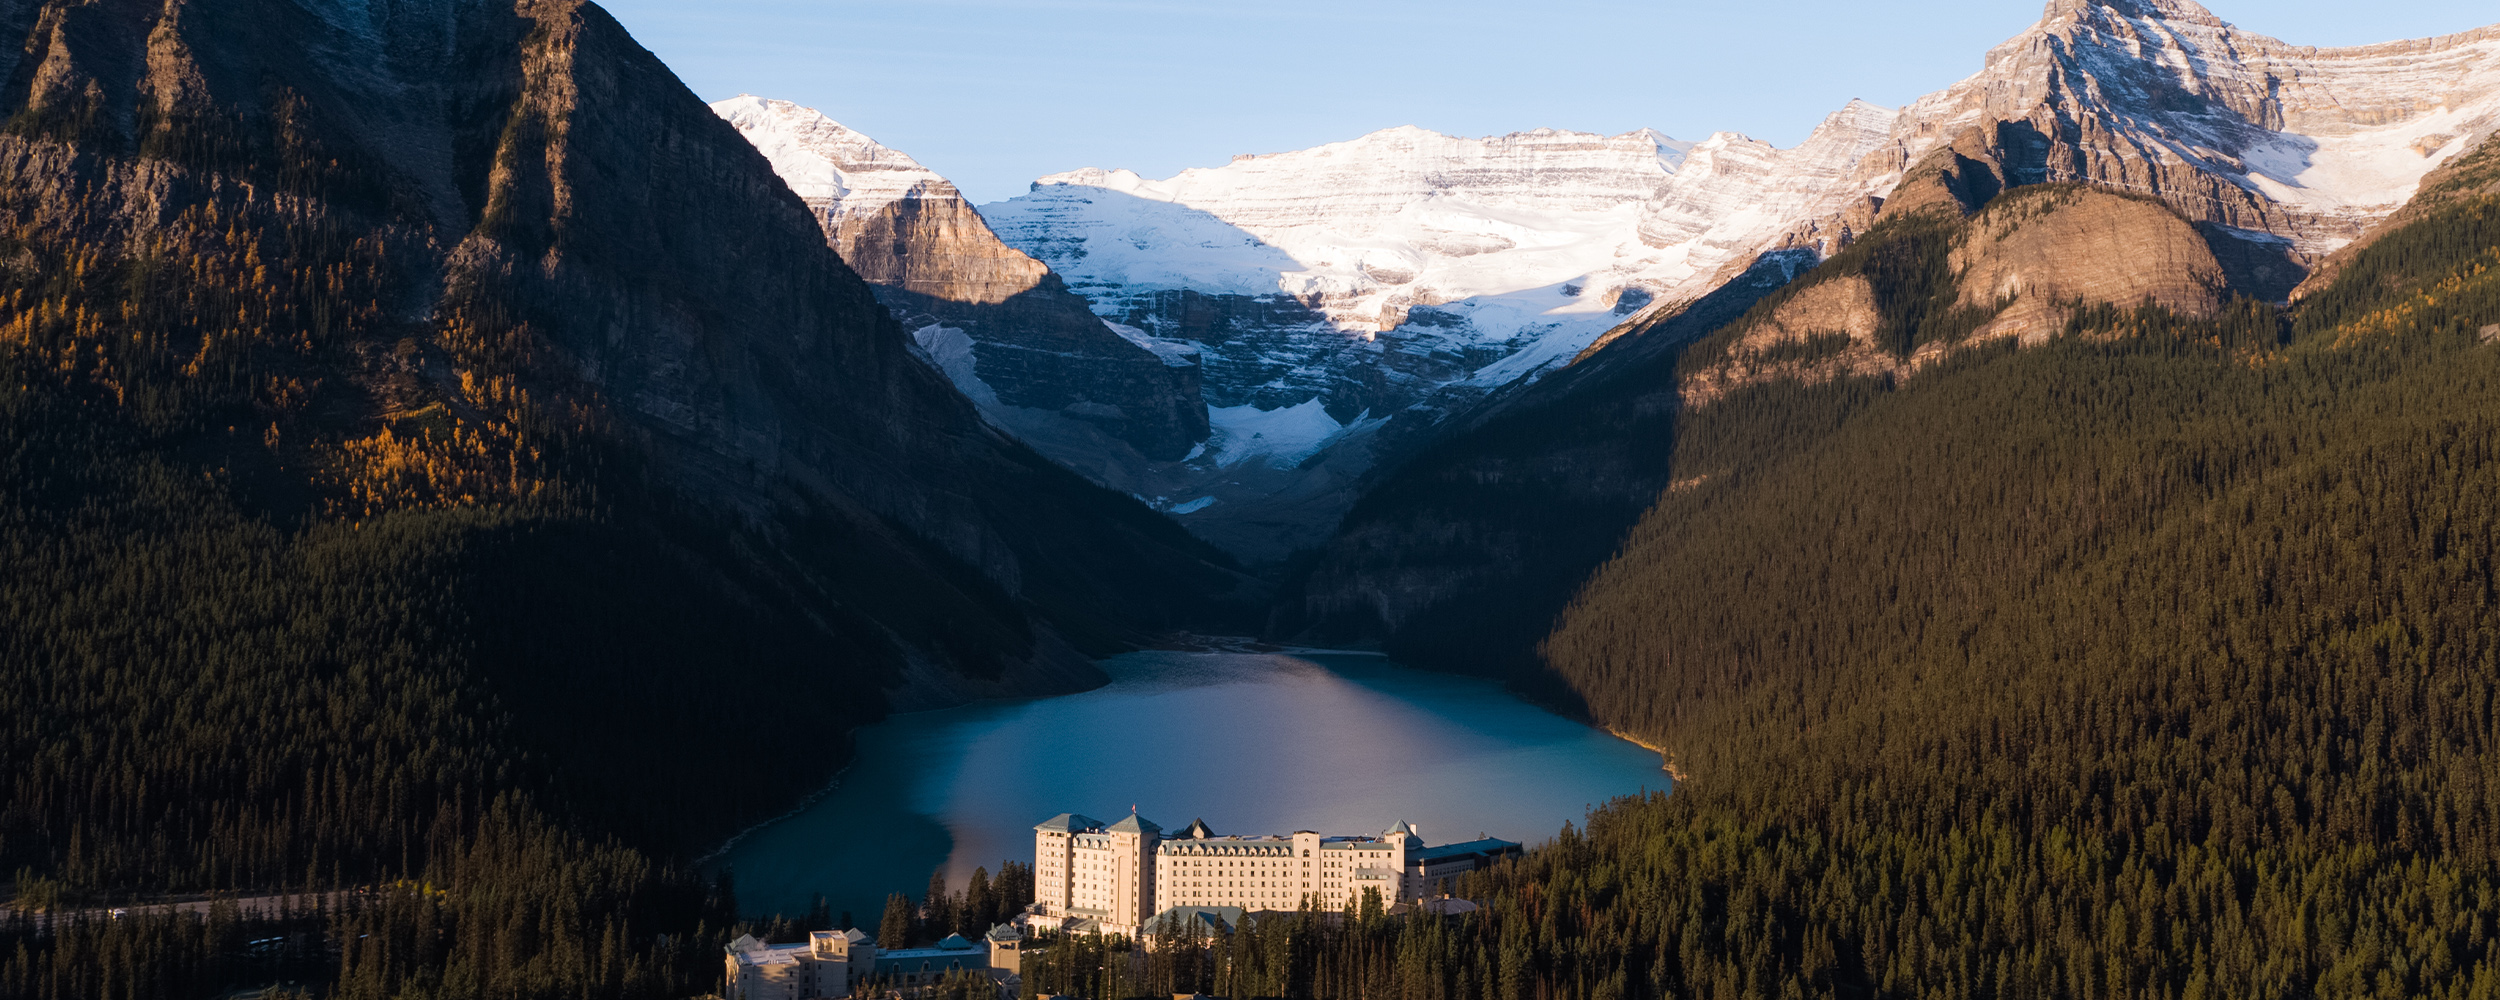 special offer lake louise